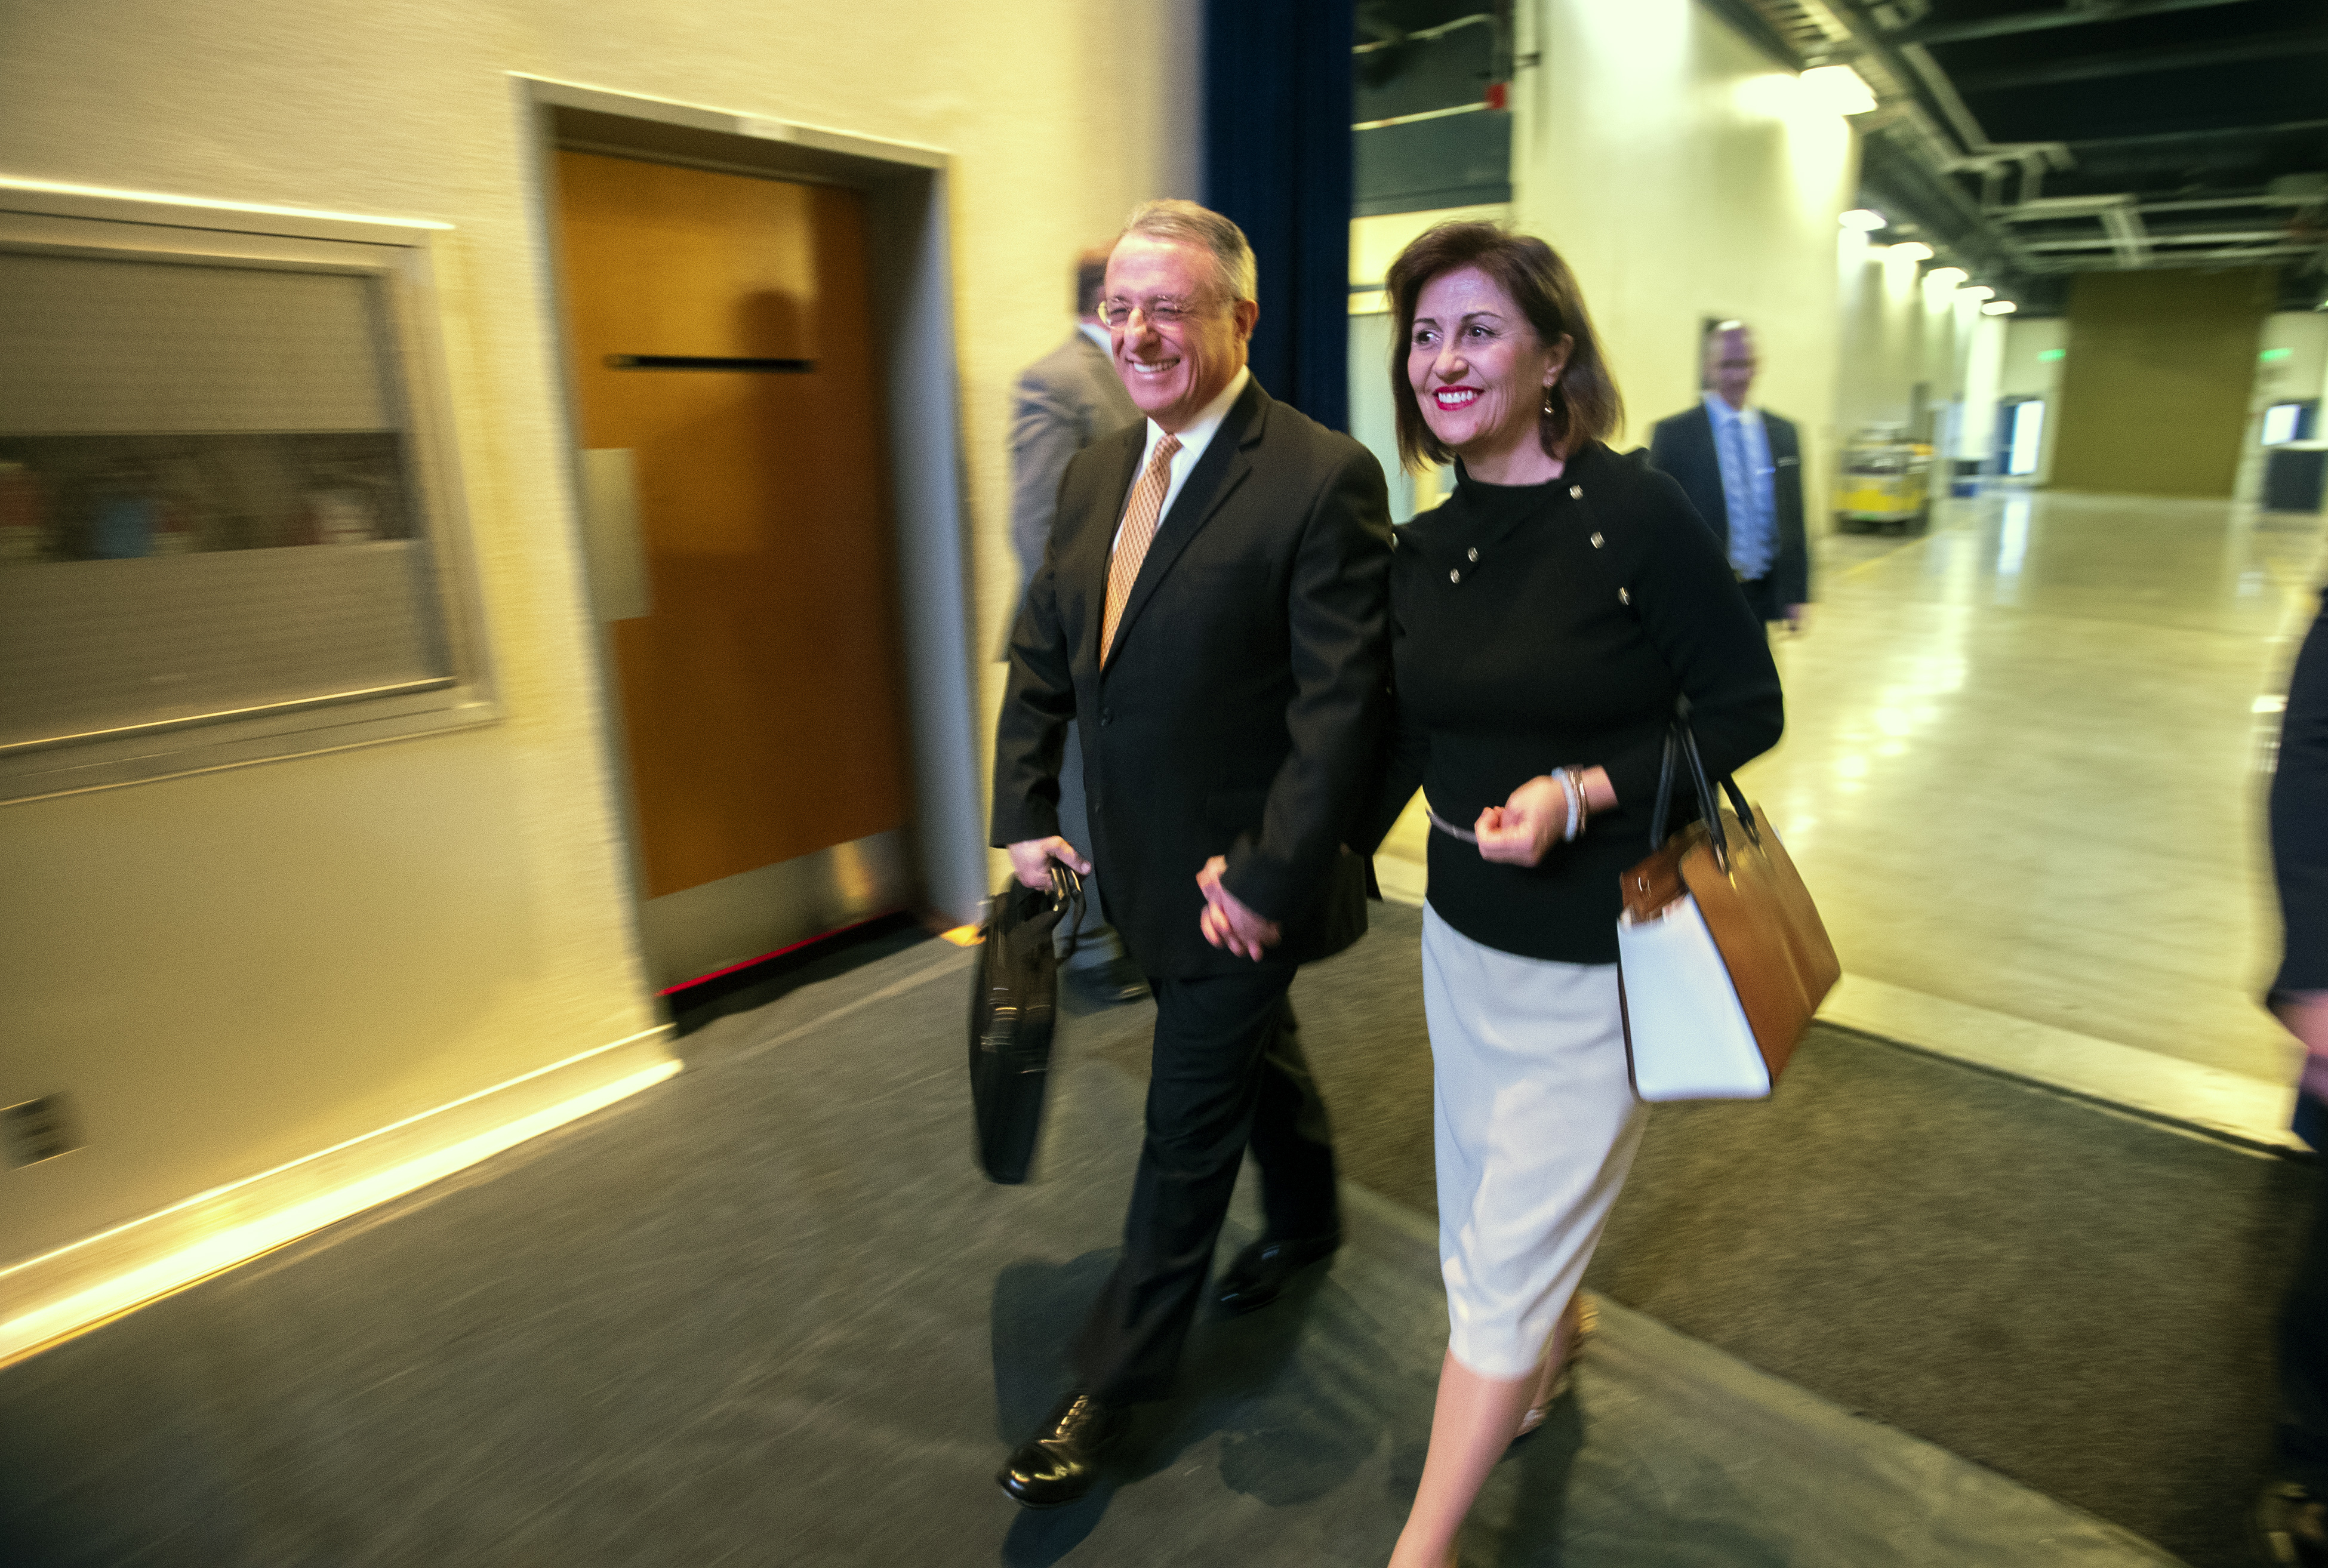 Elder Ulisses Soares of the Quorum of the Twelve Apostles of The Church of Jesus Christ of Latter-day Saints and his wife Sister Rosana Soares enter the arena prior to his speaking at a devotional at BYU in Provo on Tuesday, Feb. 5, 2019.